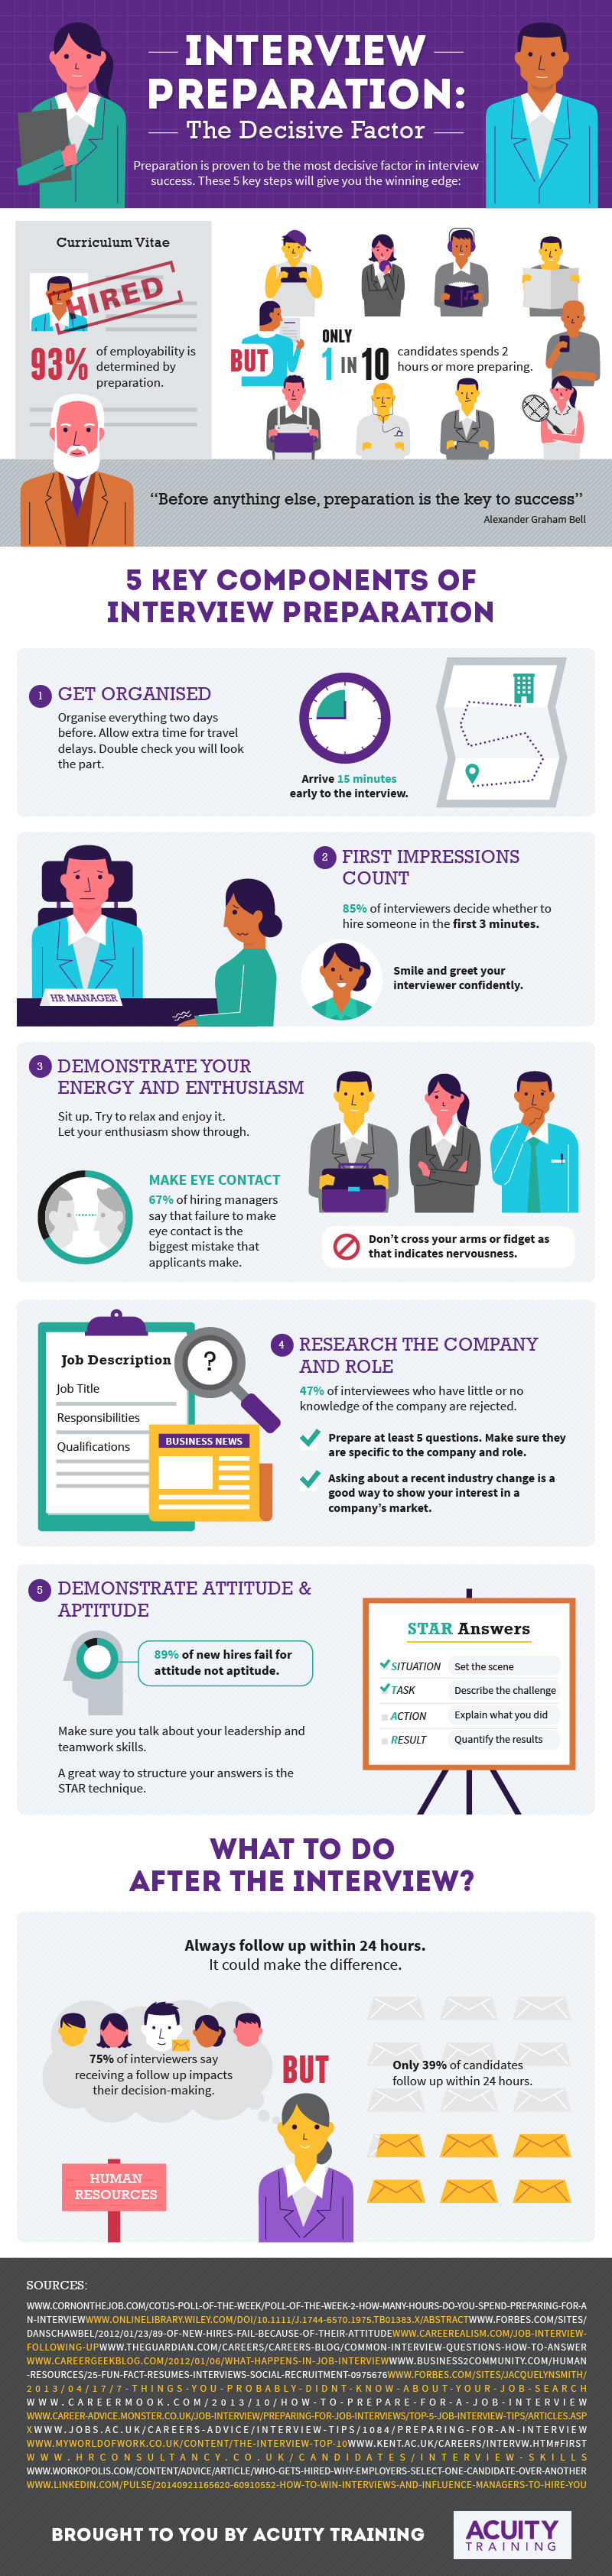 interview preparation infographic acuity training - How To Prepare For An Interview Preparing For An Interview